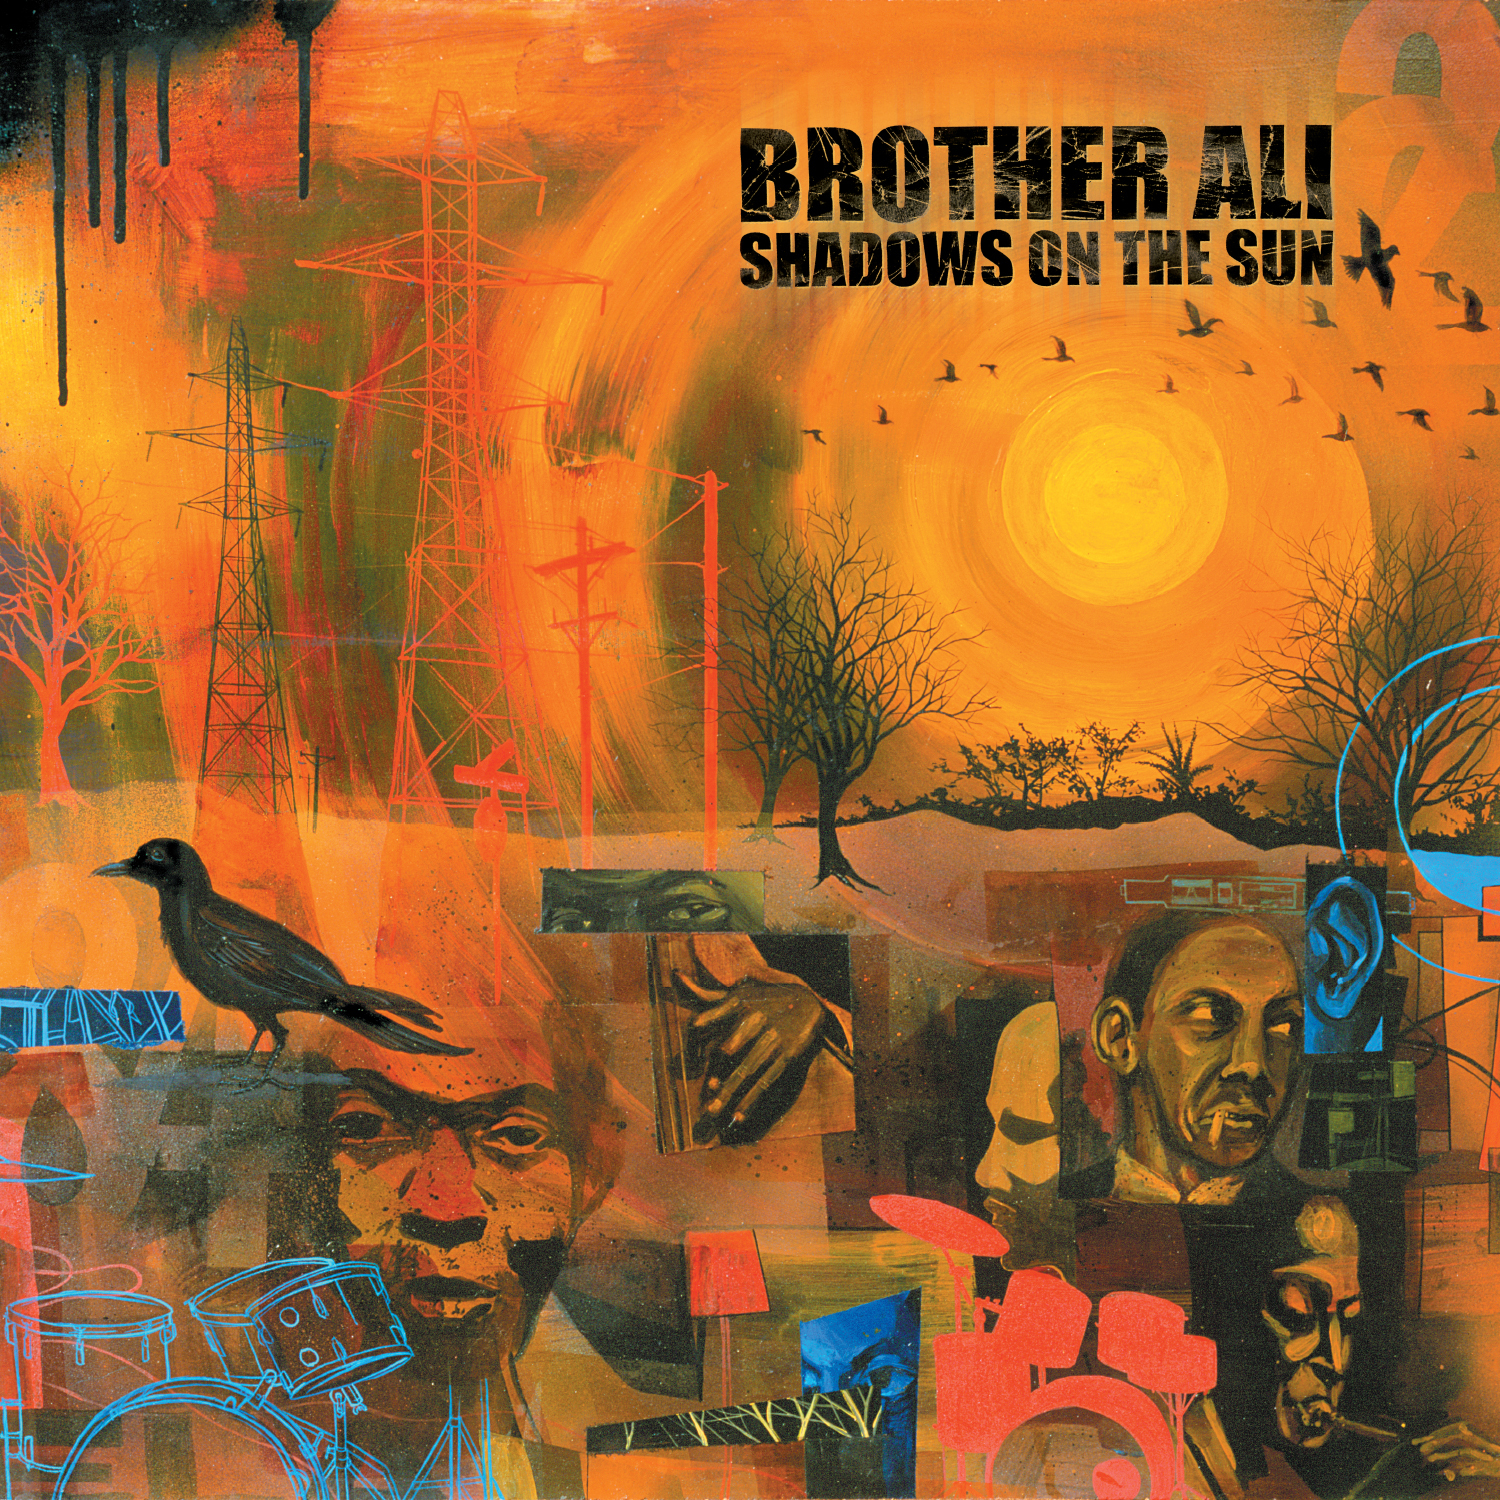 Brother-Ali-ShadowsOnTheSun.jpg